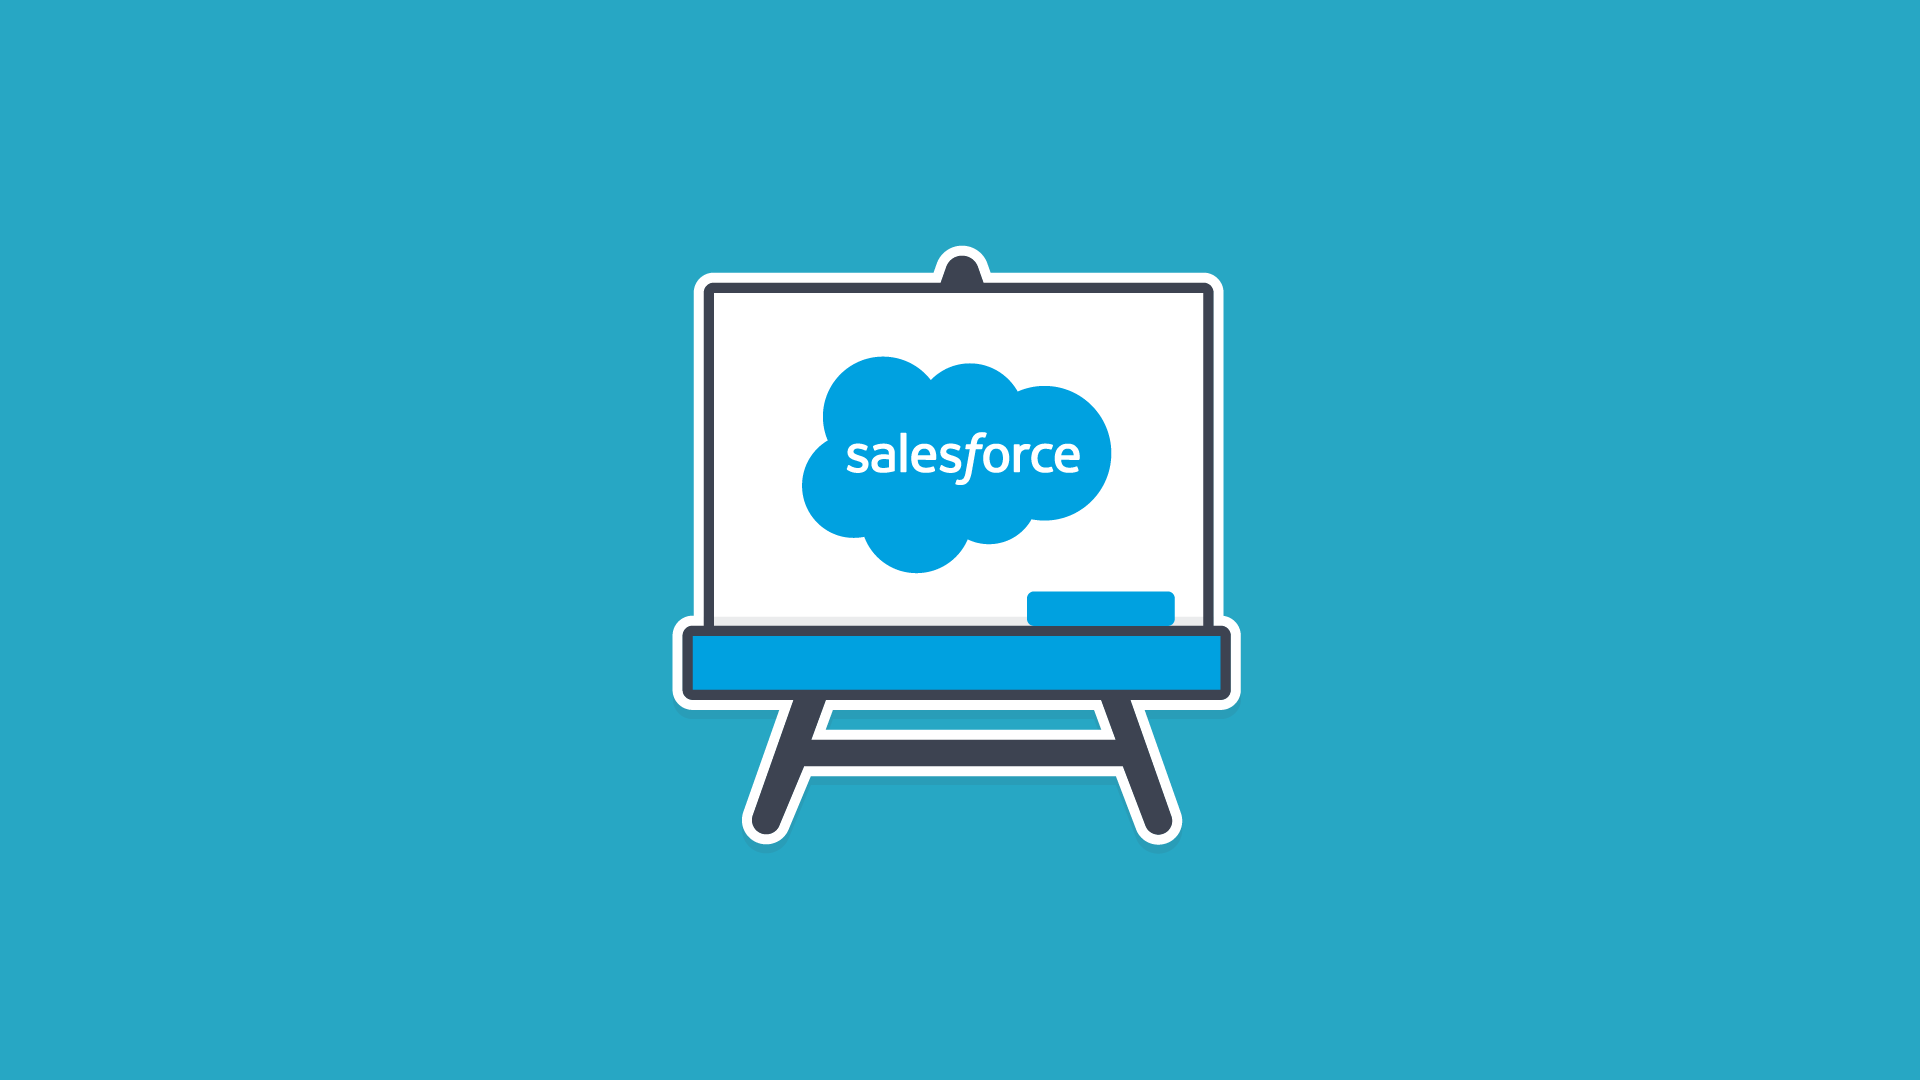 corso salesforce philmark